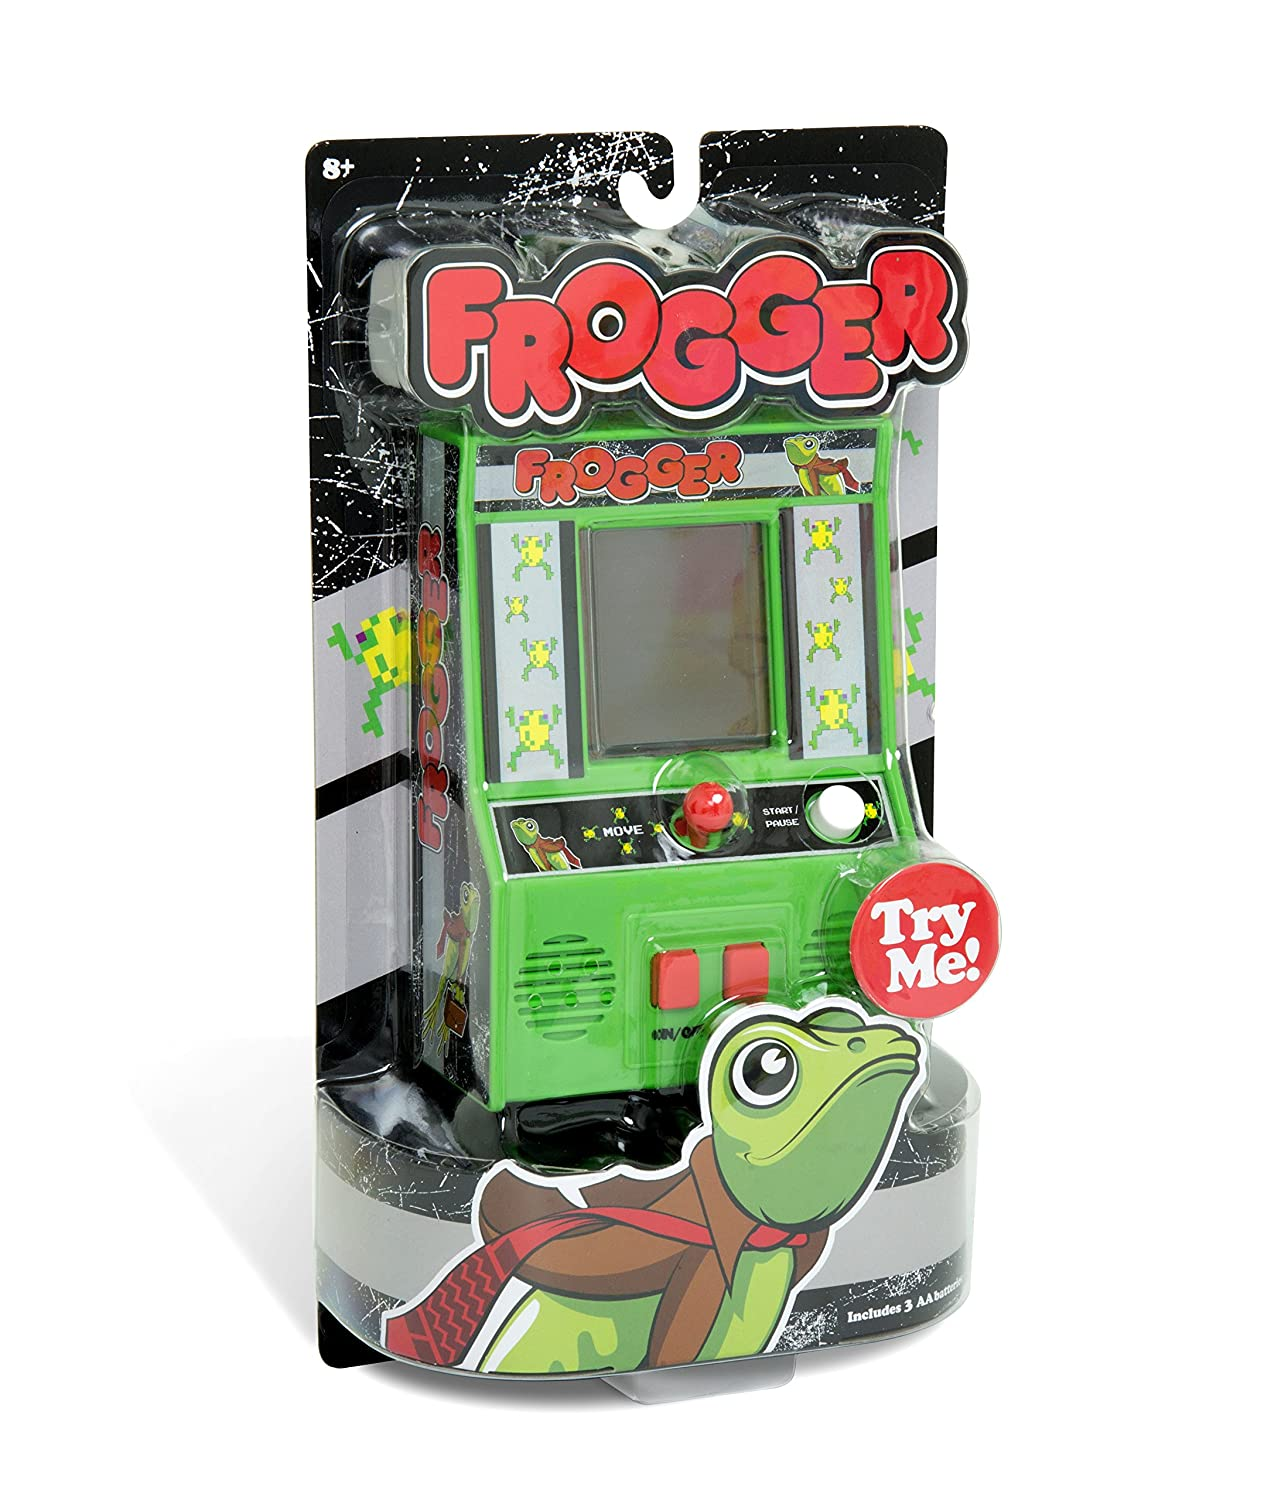 Frogger Mini Arcade Game. Asteroids, Centipede and QBert also available.